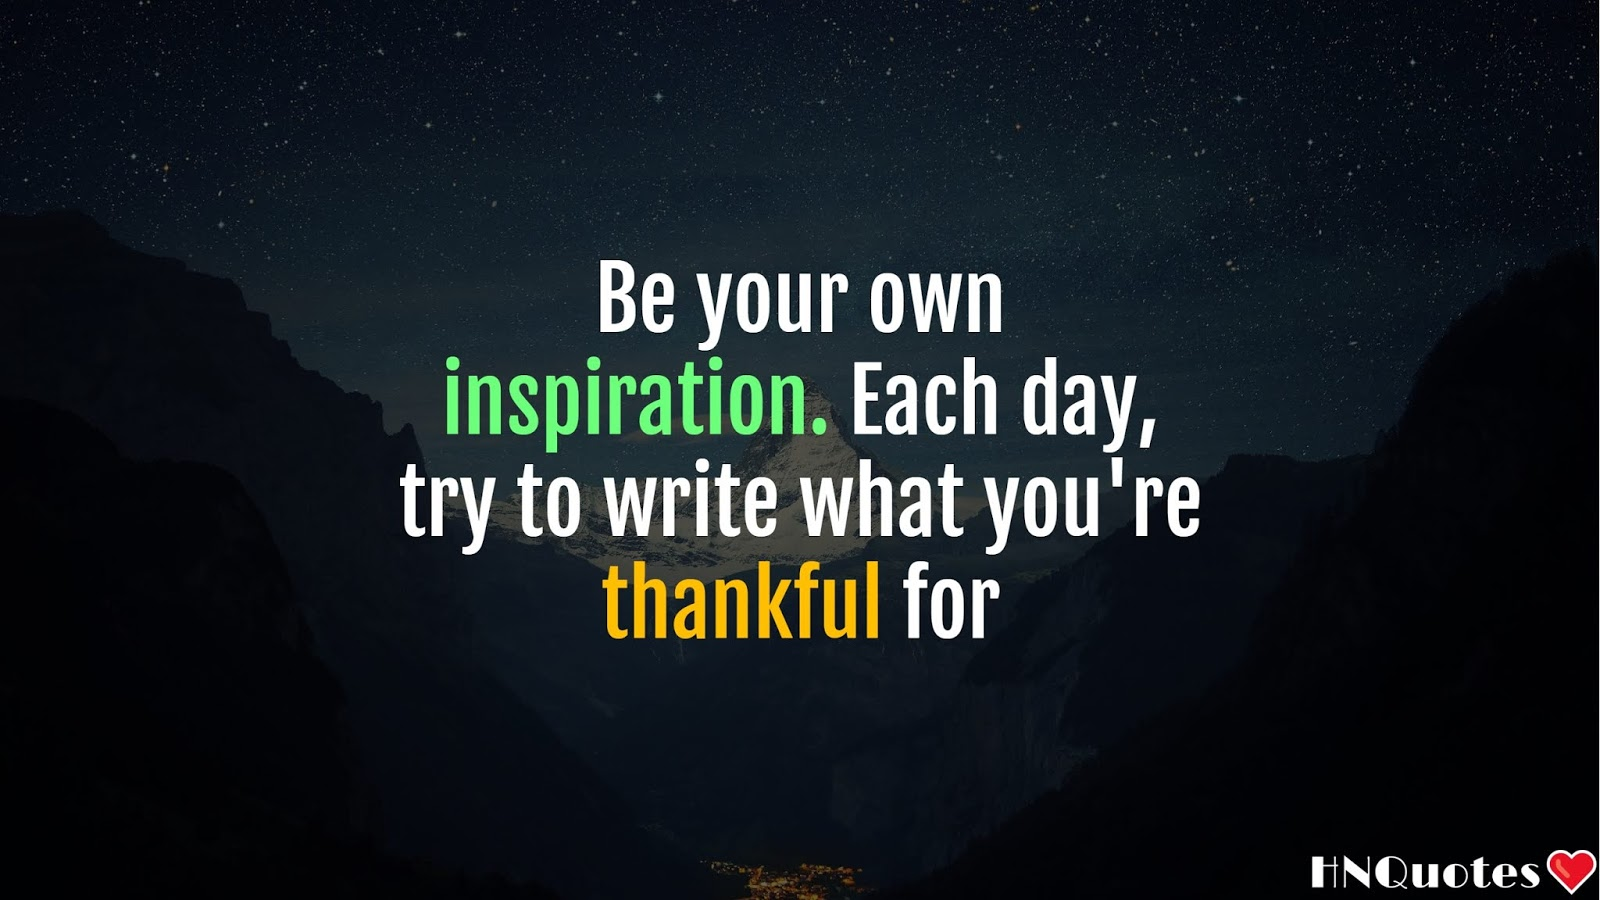 Inspirational-Quotes-On-Everyday-Life-Motivational-Sayings-113-Beautiful-HNQuotes